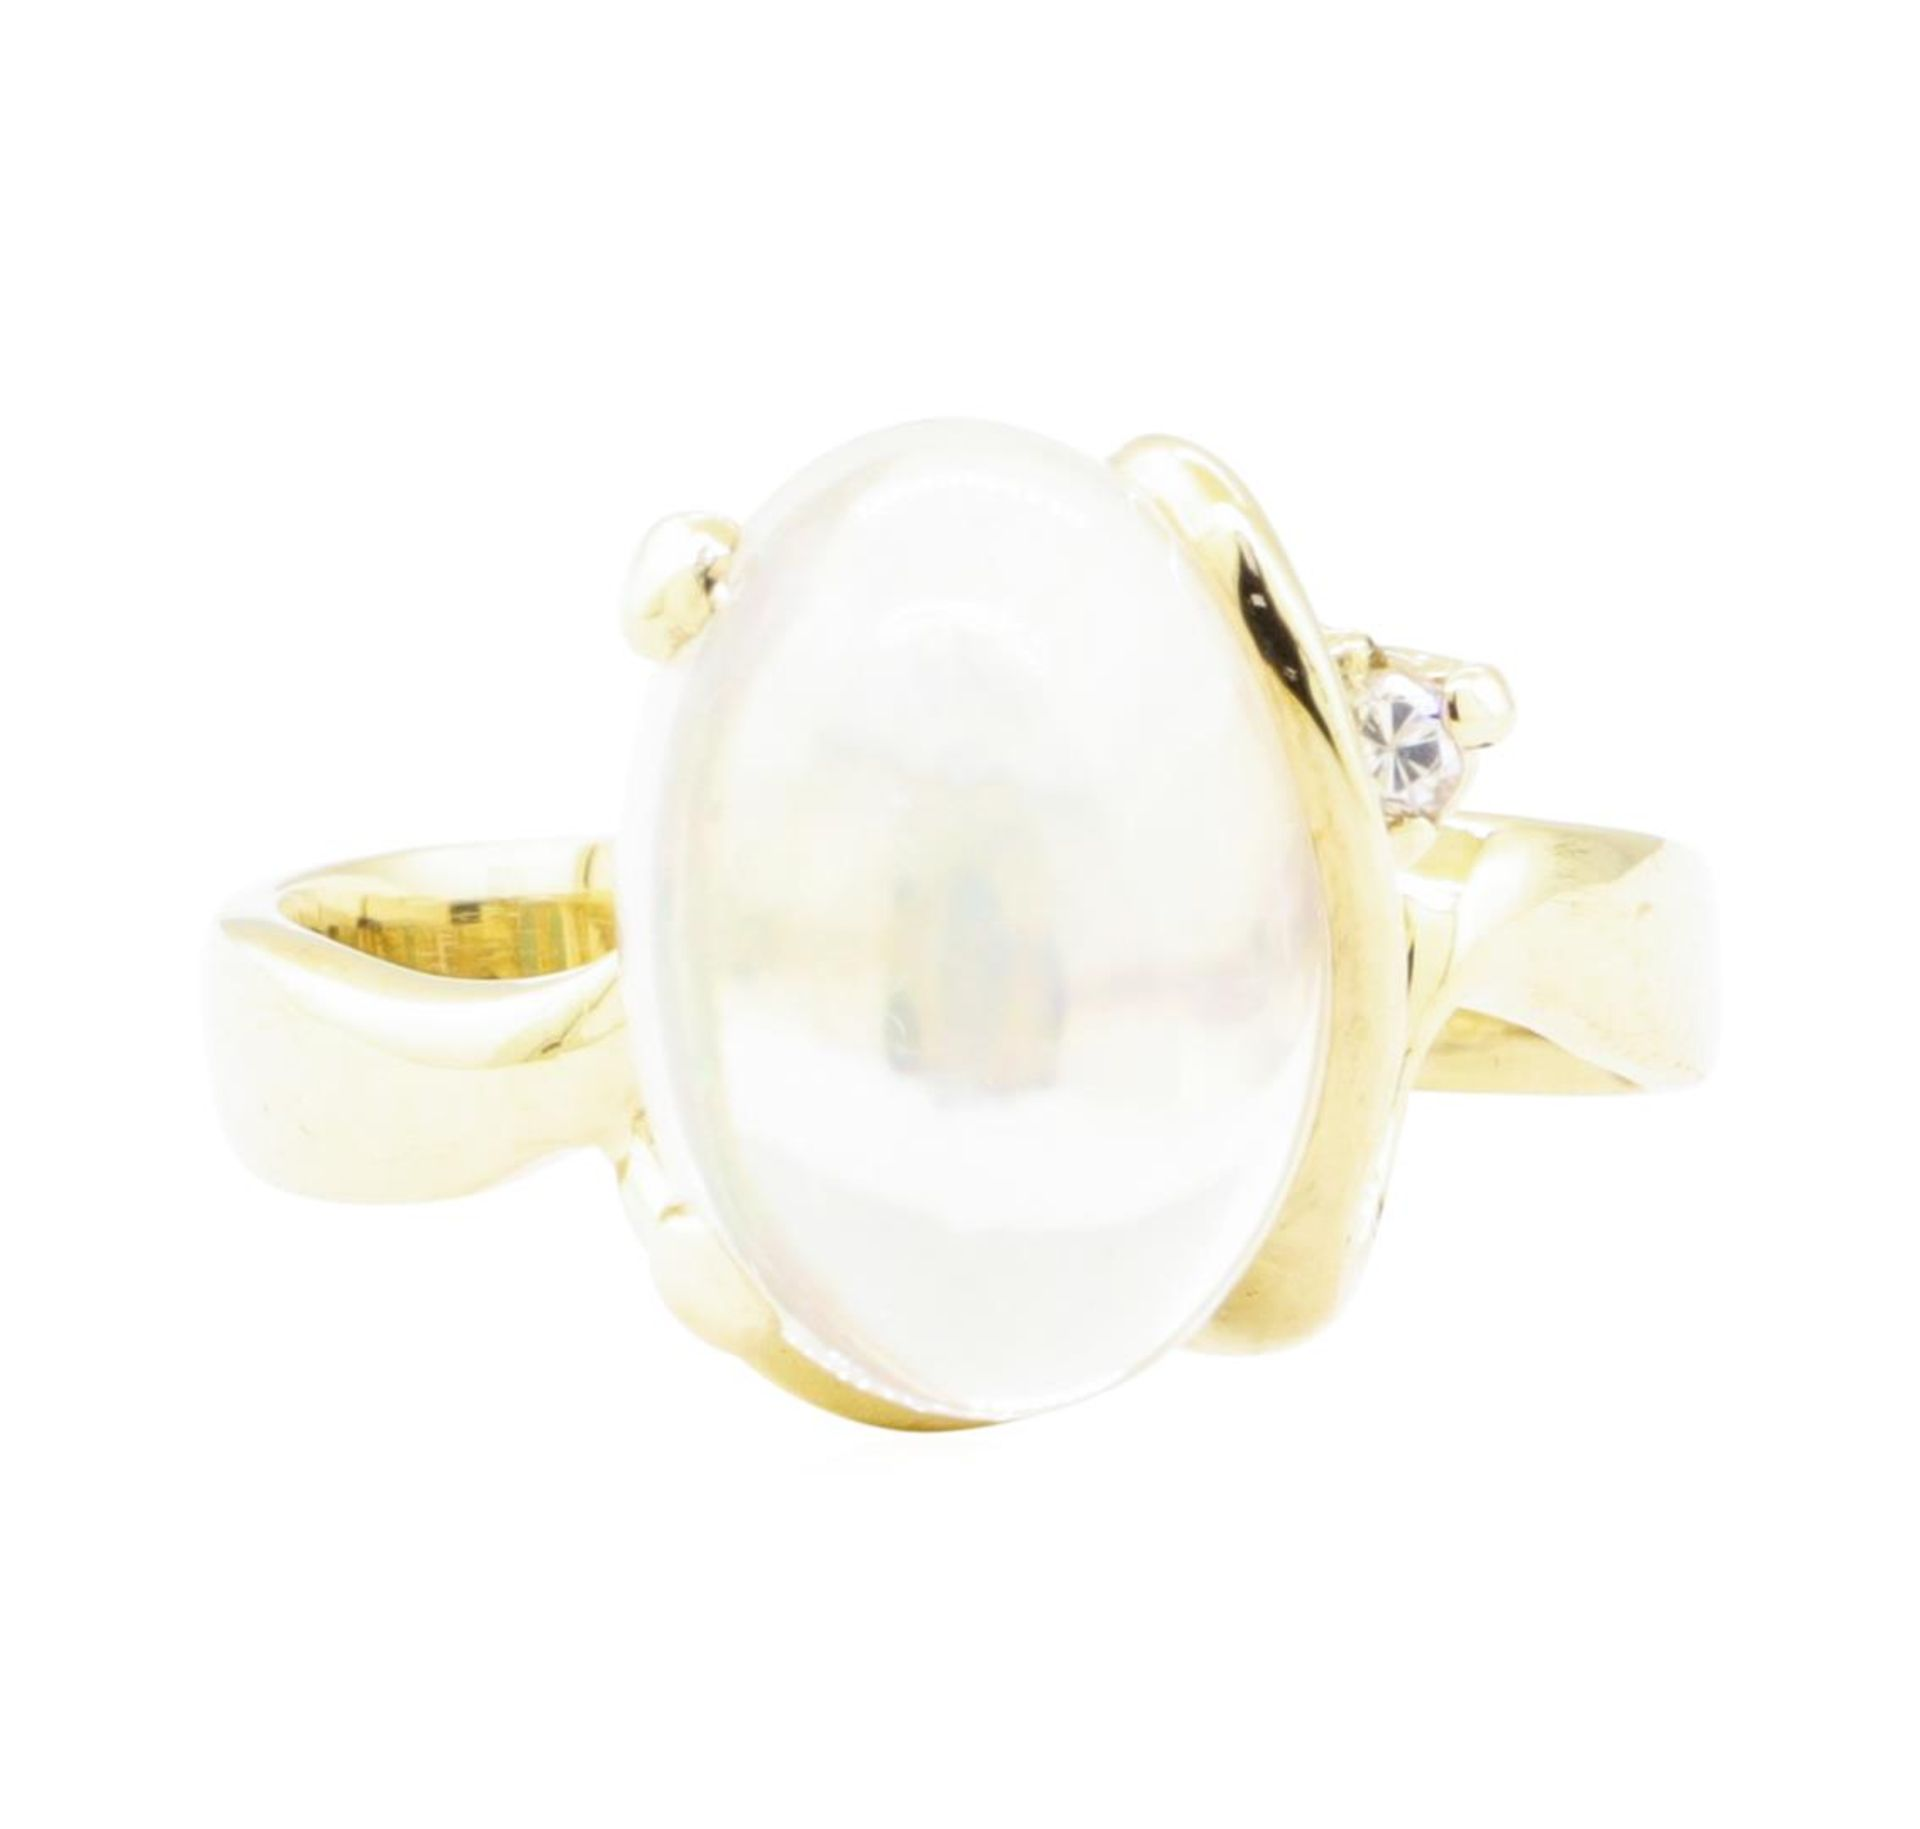 6.88 ctw Opal and Diamond Ring - 14KT Yellow Gold - Image 2 of 4